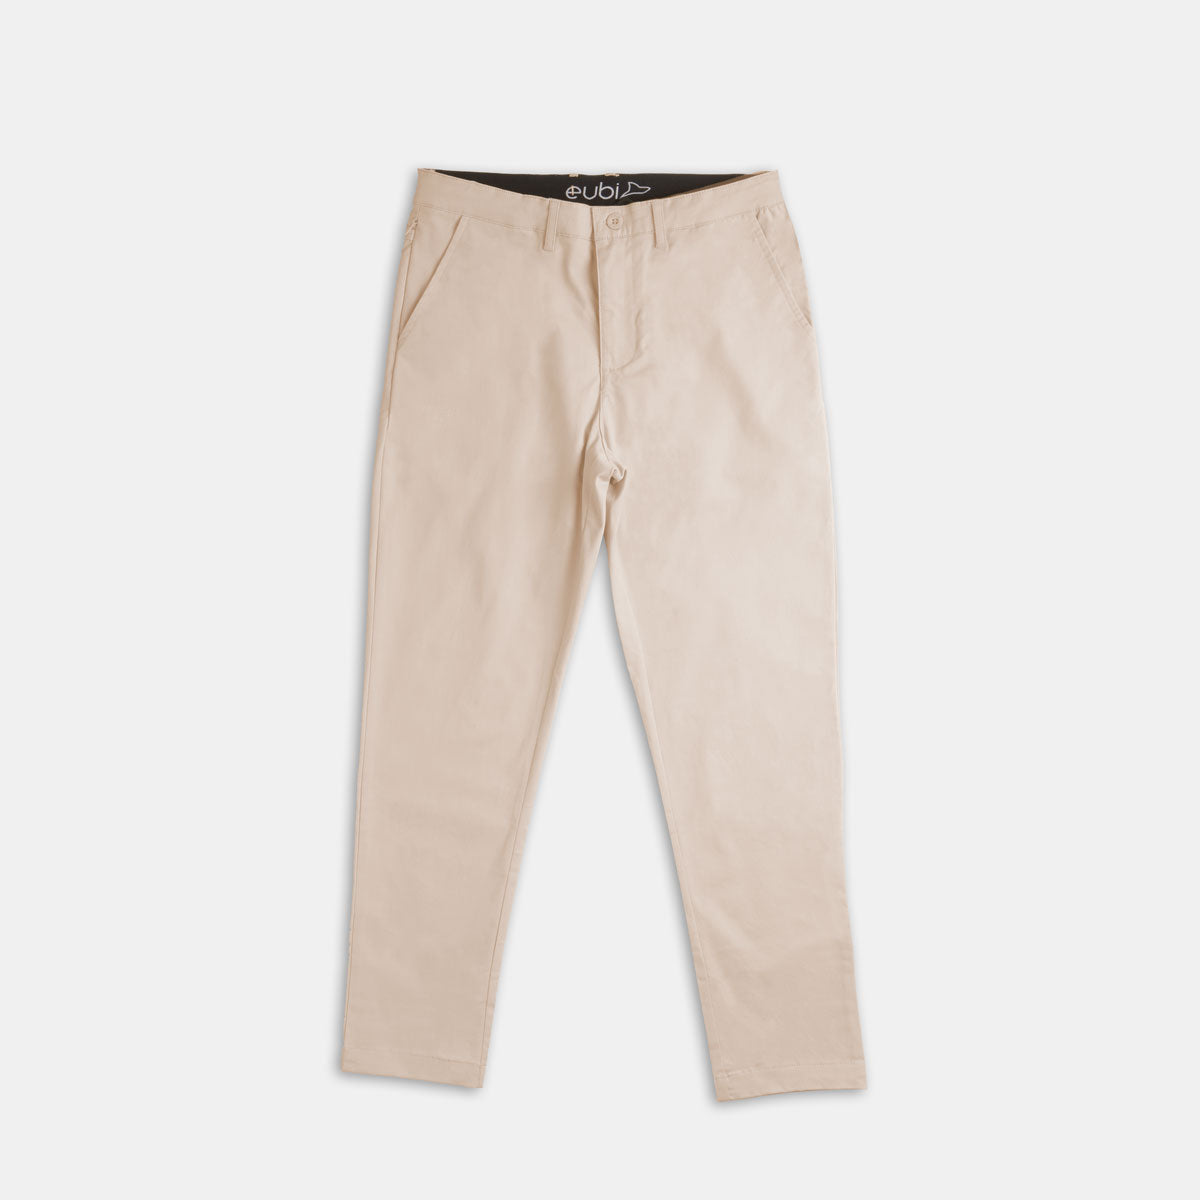 Sandy Brown Flex All Day Chino Pants